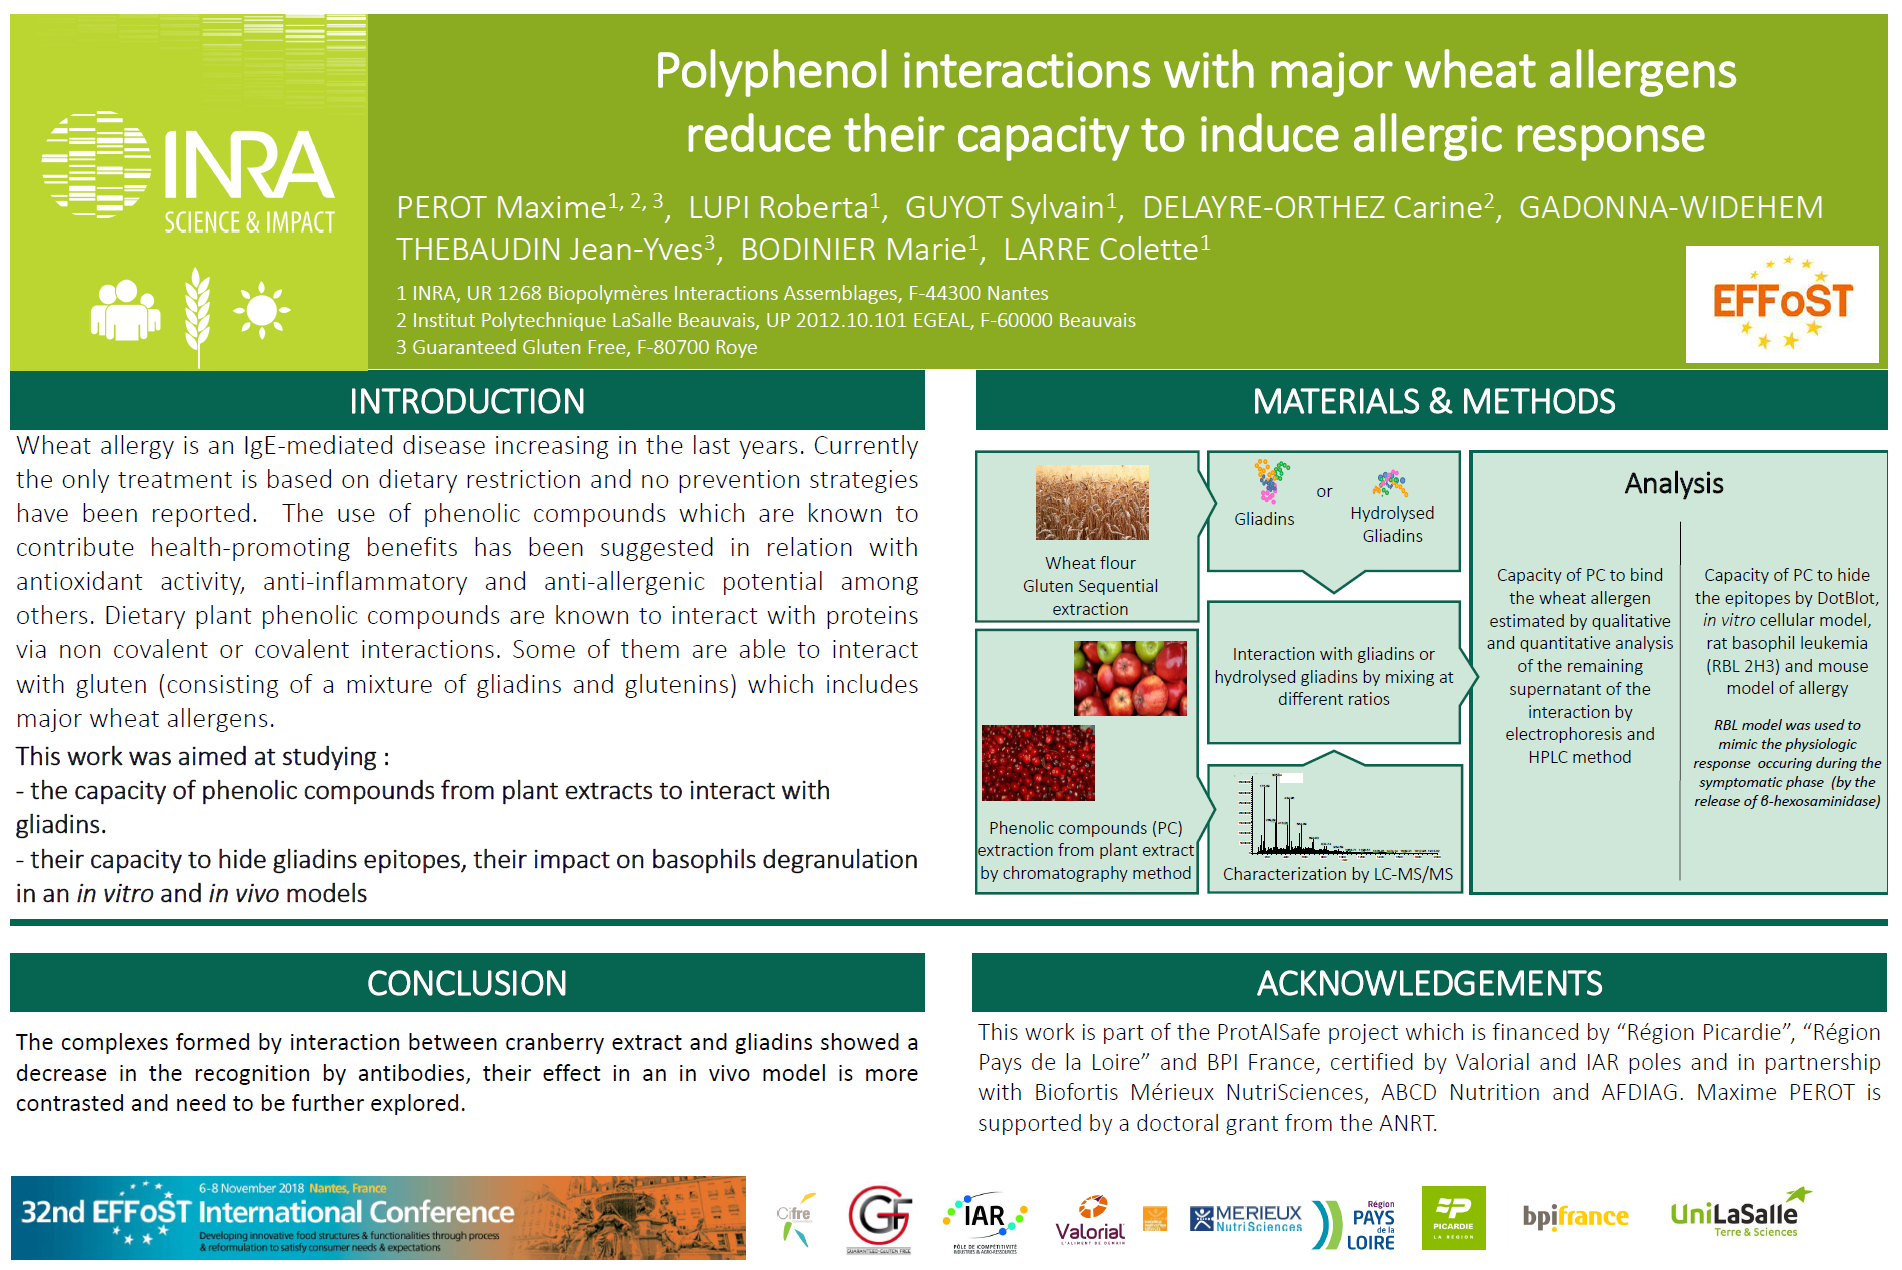 Polyphenol interactions with major wheat allergens reduce their capacity to induce allergic response